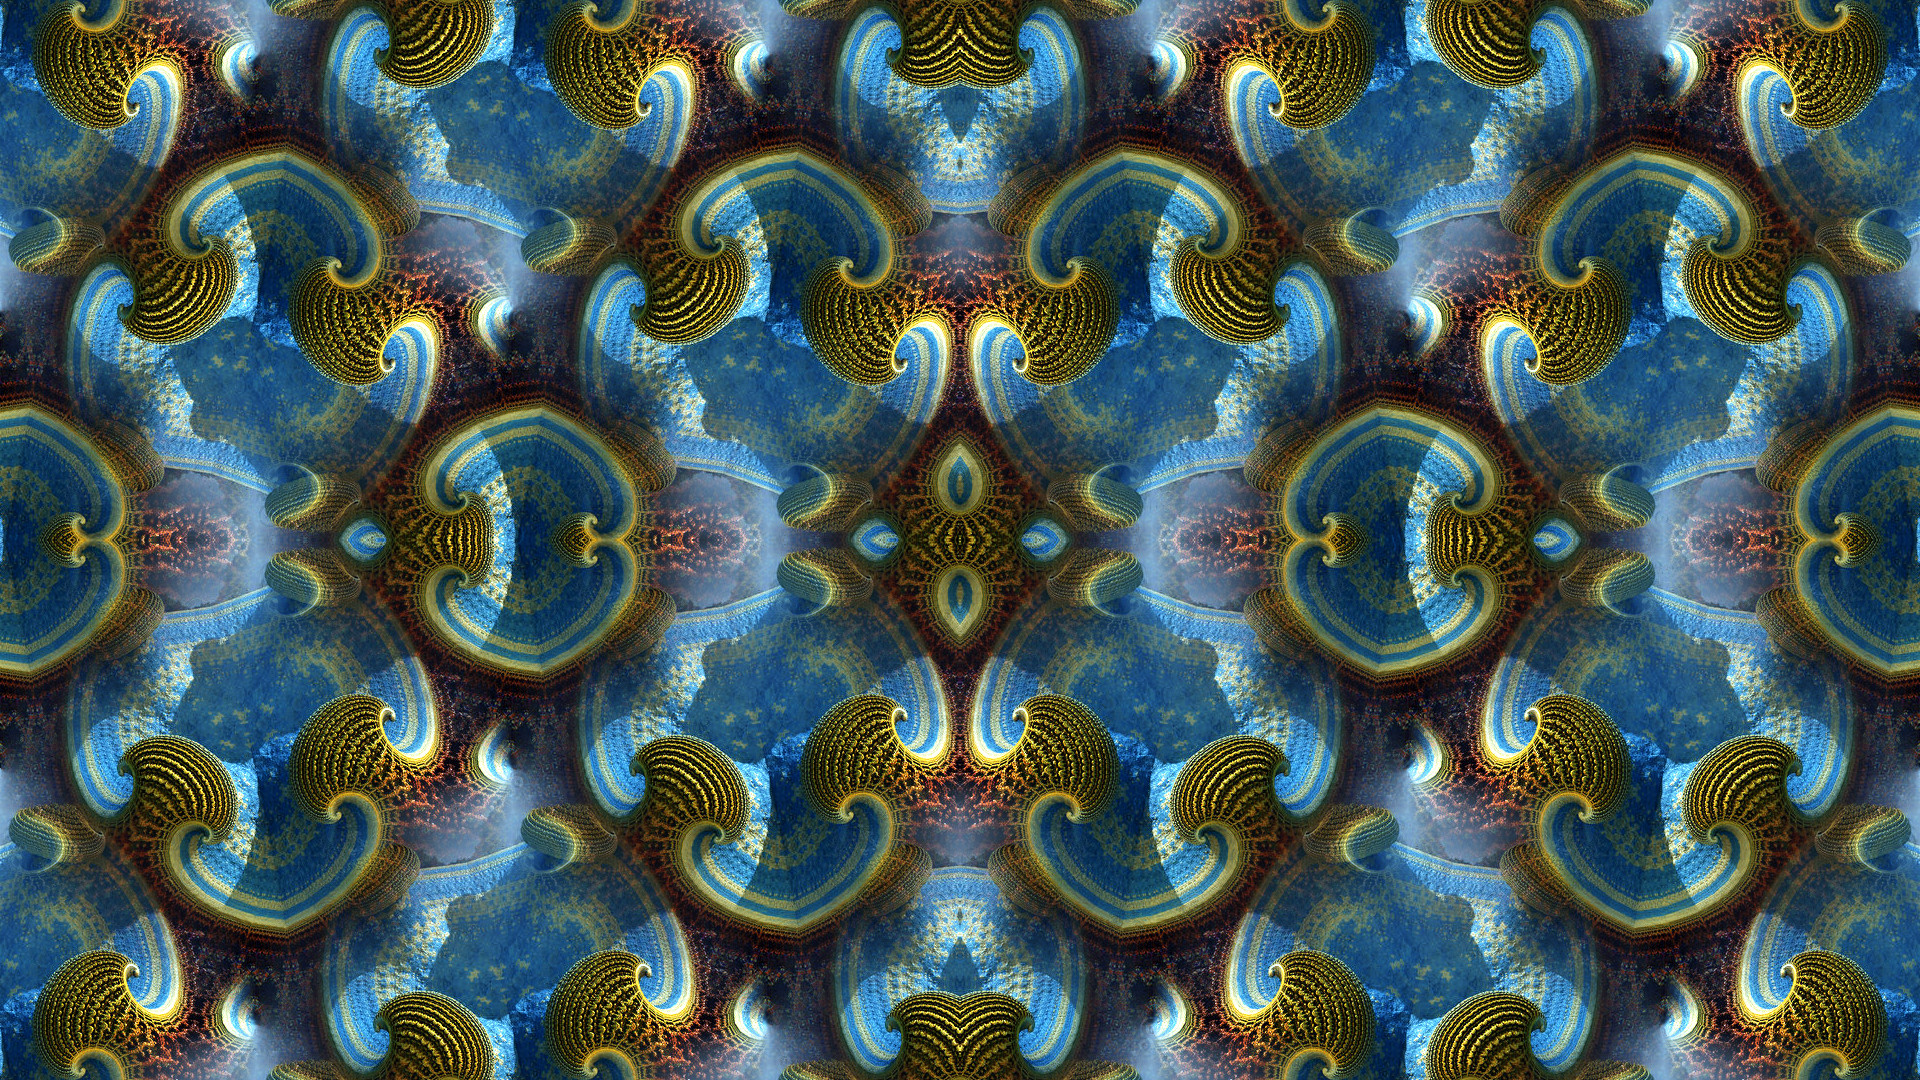 General 1920x1080 abstract pattern symmetry fractal